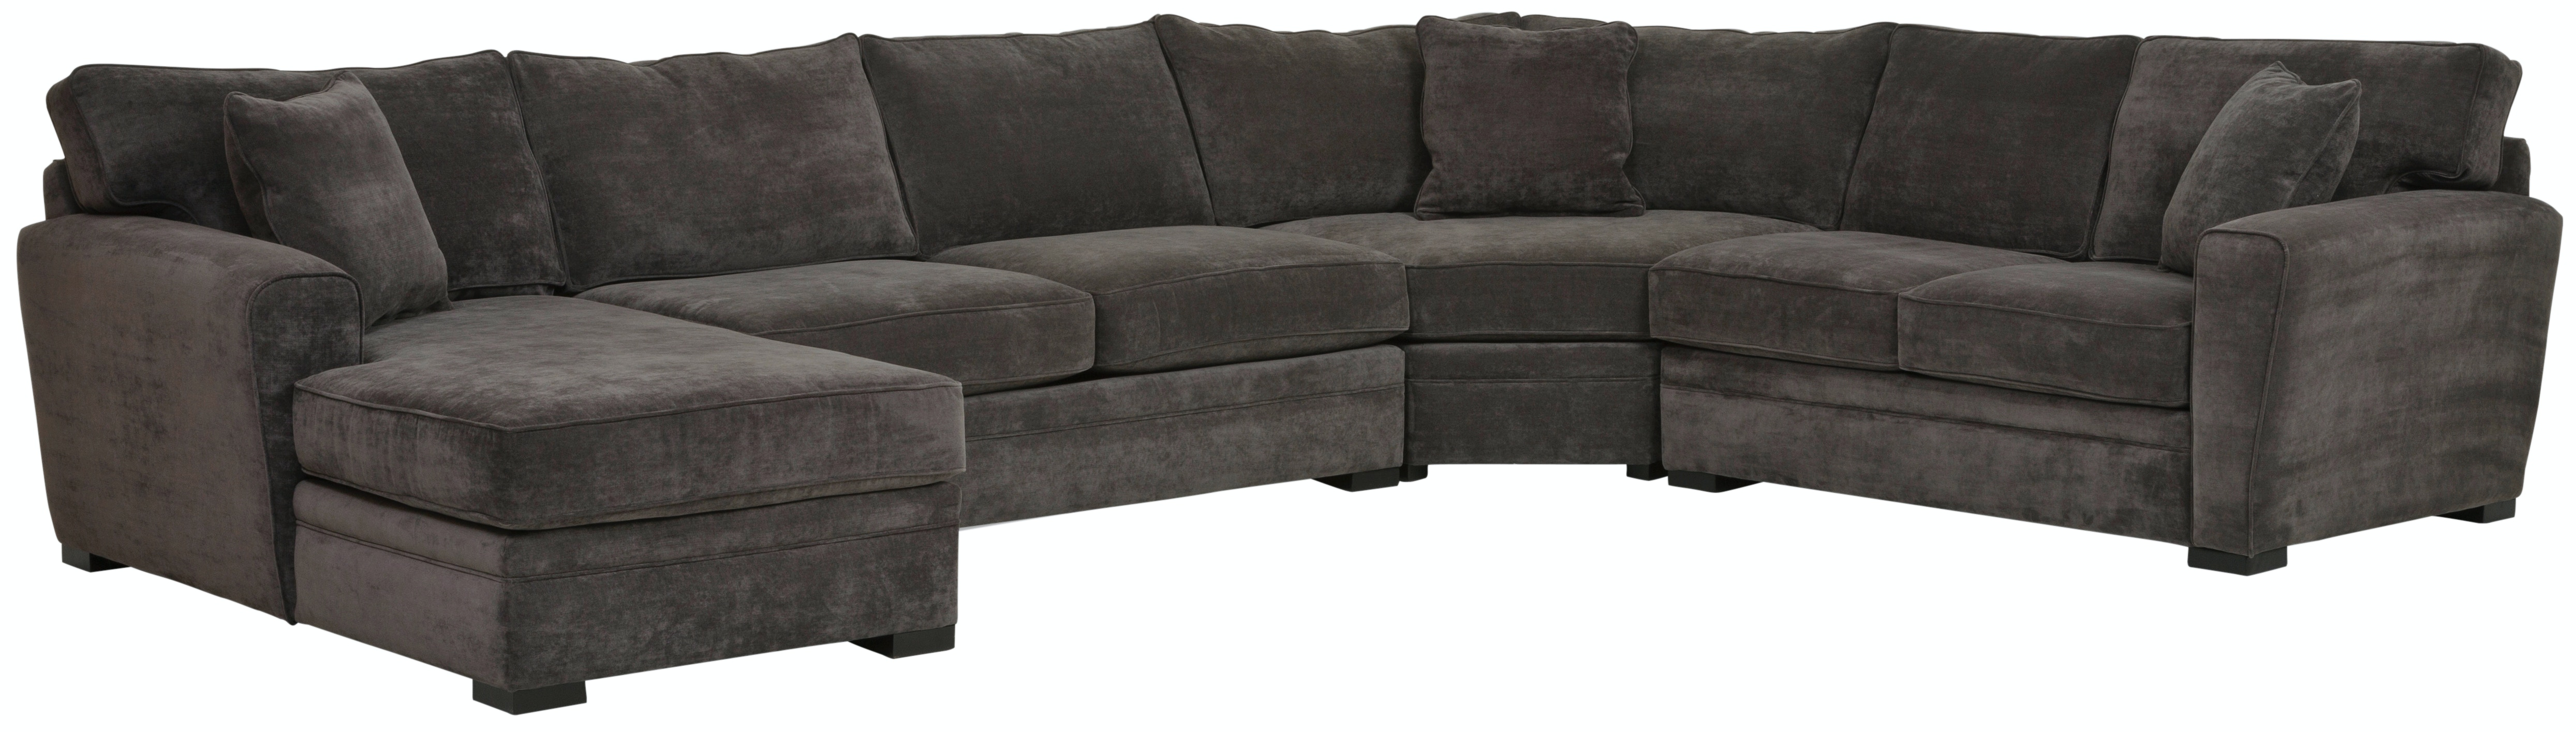 Artemis 4-Piece Sectional  sc 1 st  Star Furniture : texas sectionals - Sectionals, Sofas & Couches